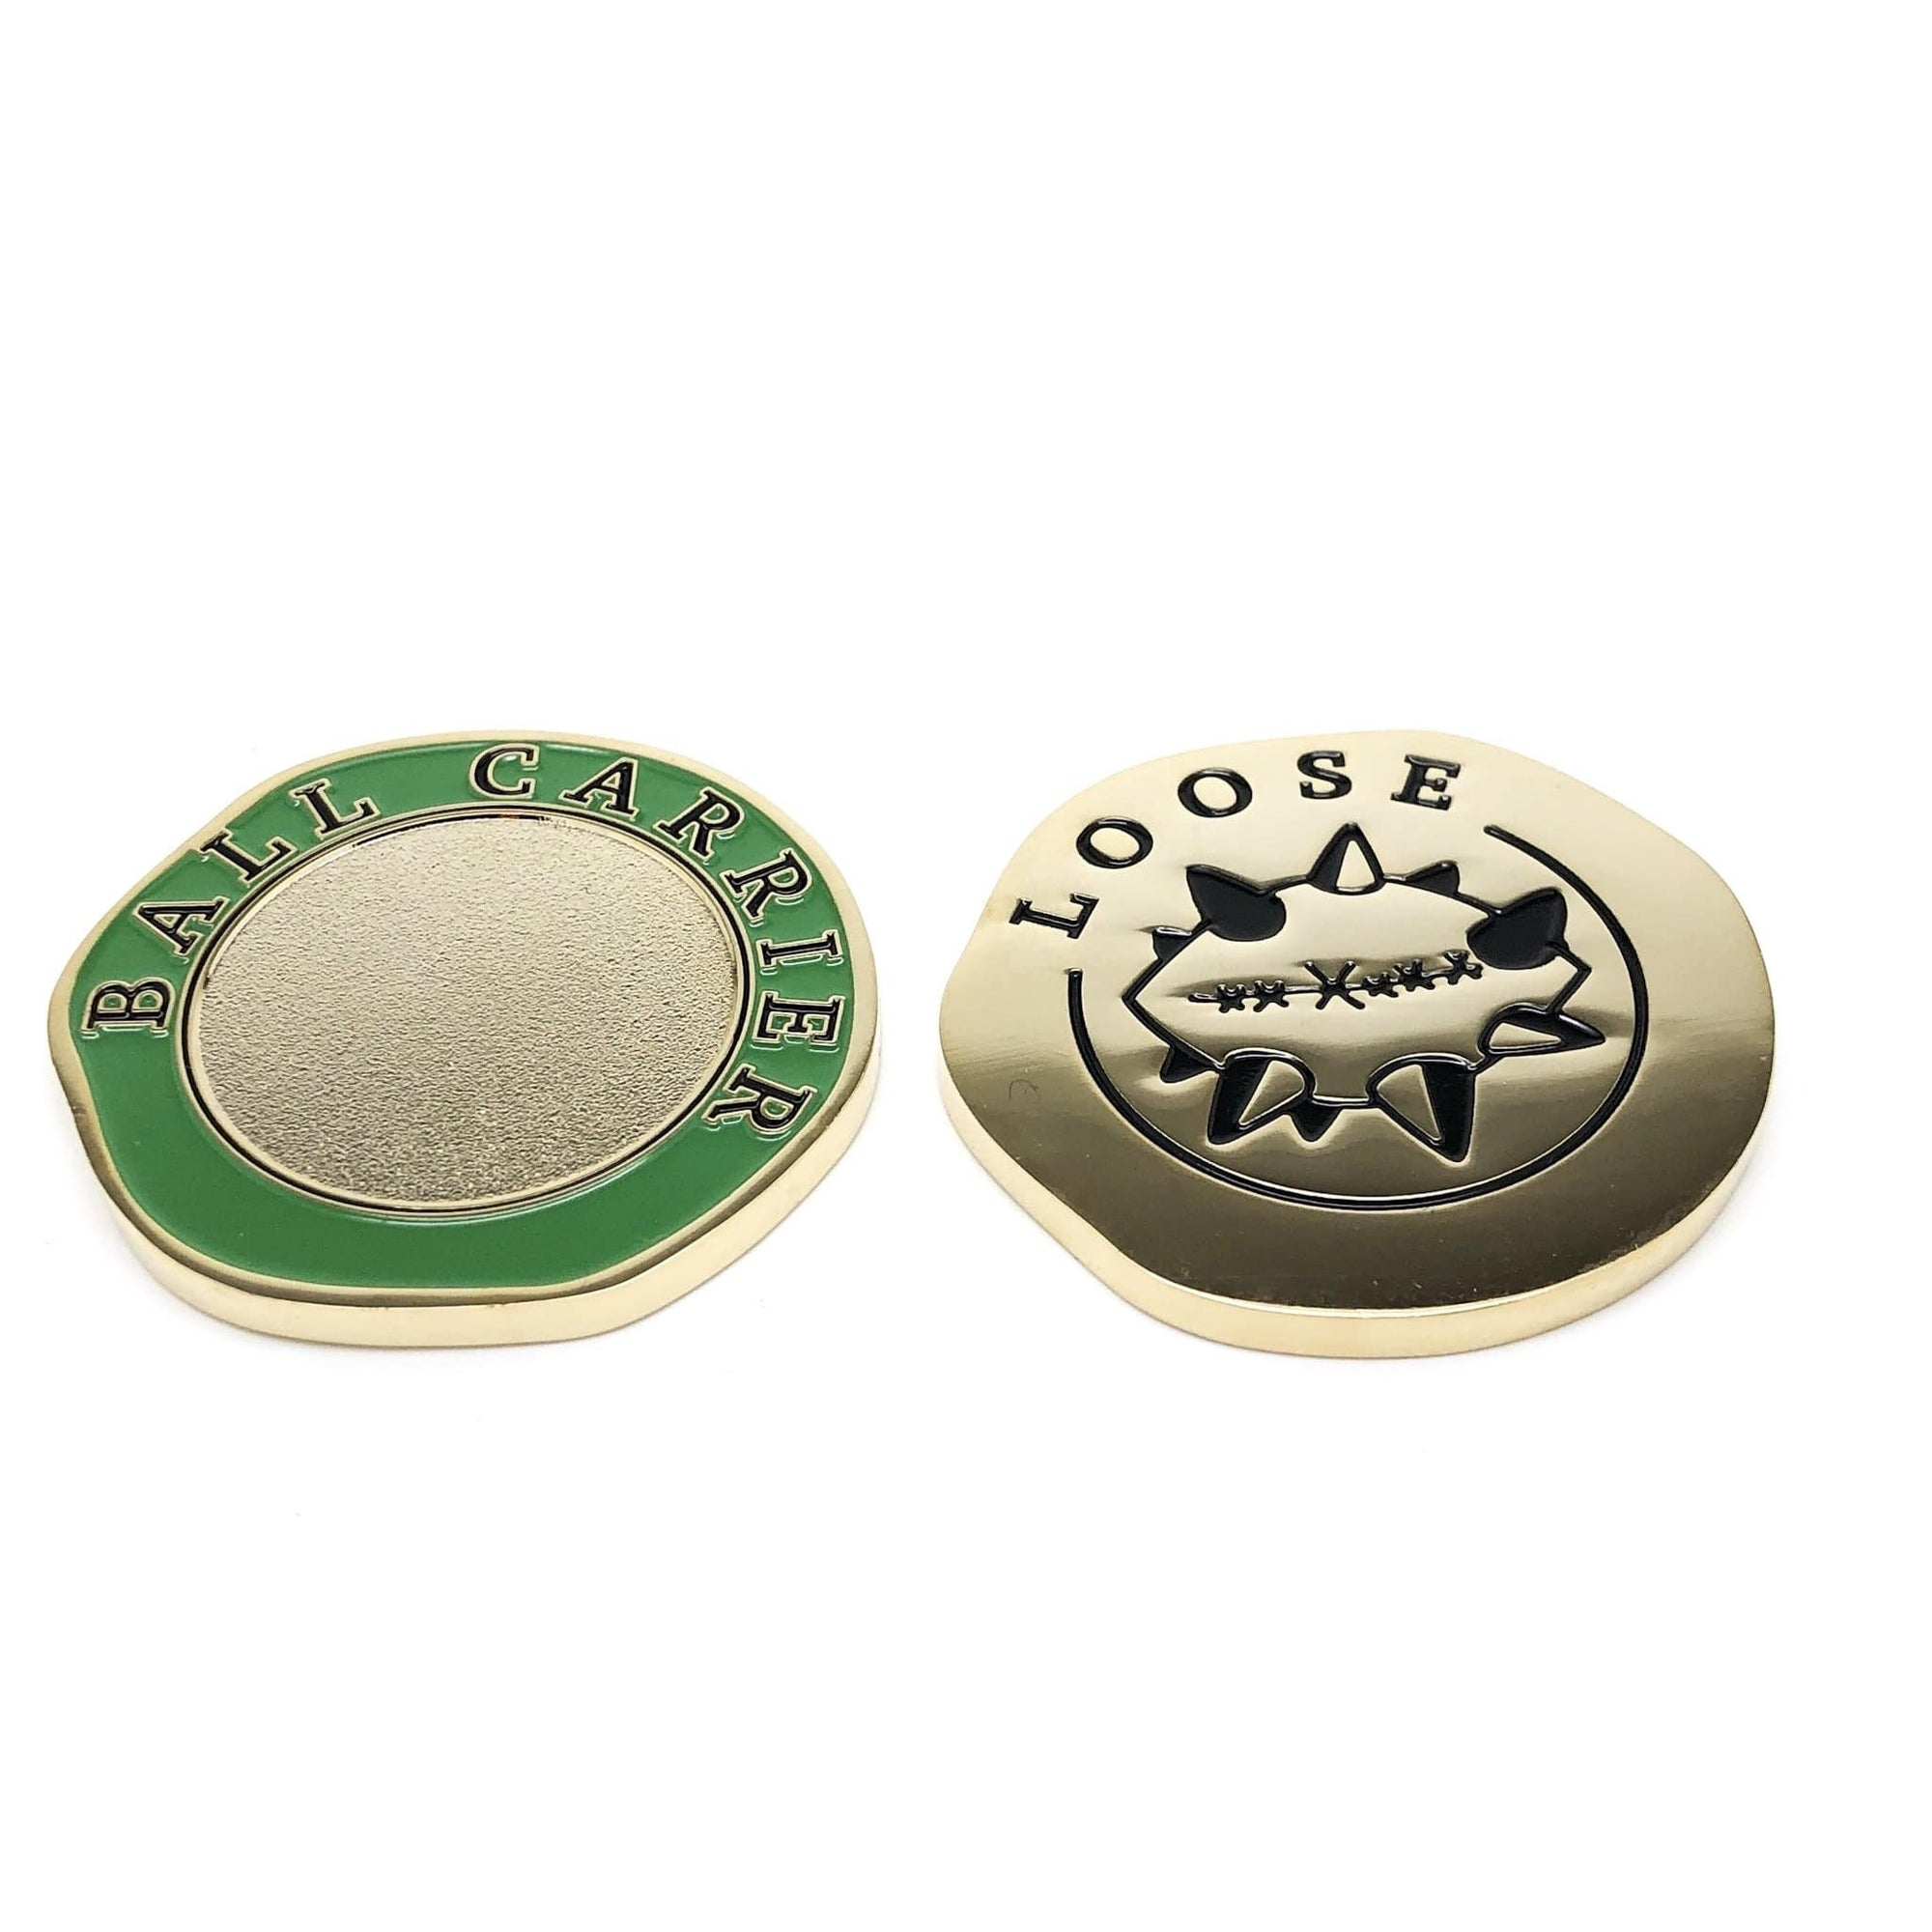 Exit 23 Games Accessories Ball Token League Pack